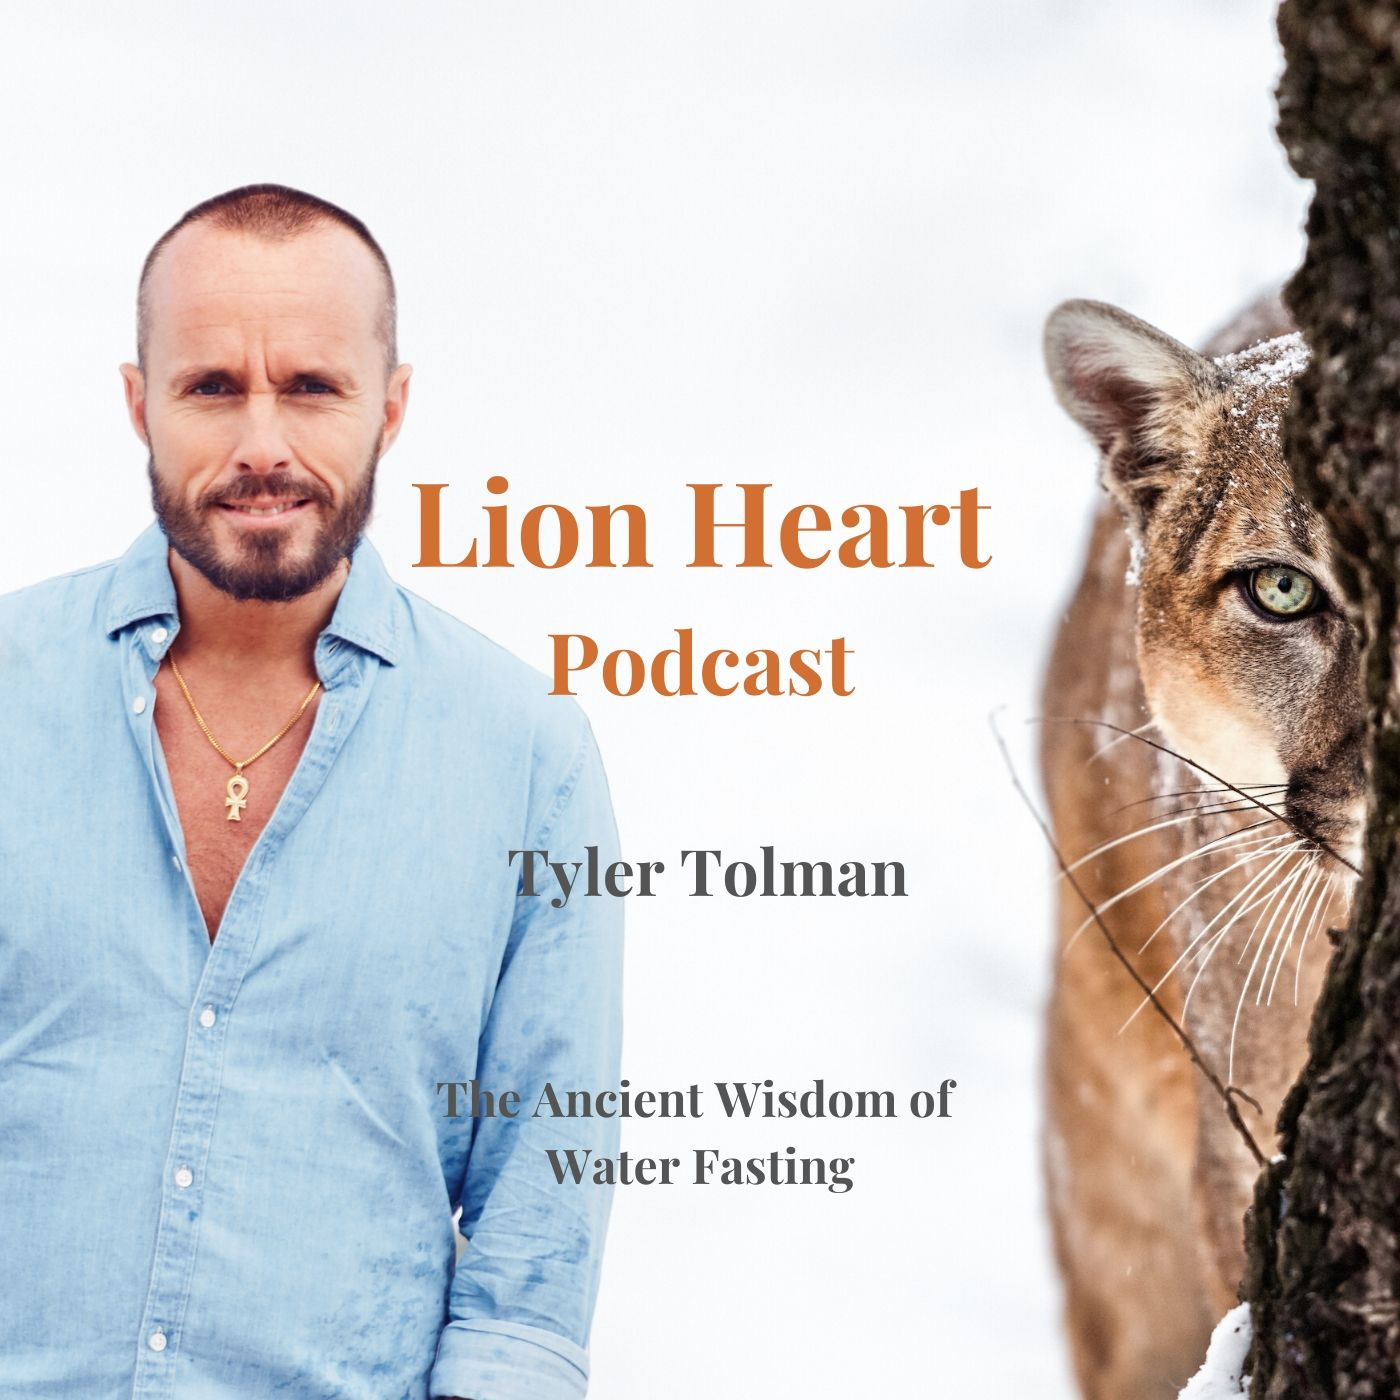 The Ancient Wisdom of Water Fasting with Tyler Tolman - E3